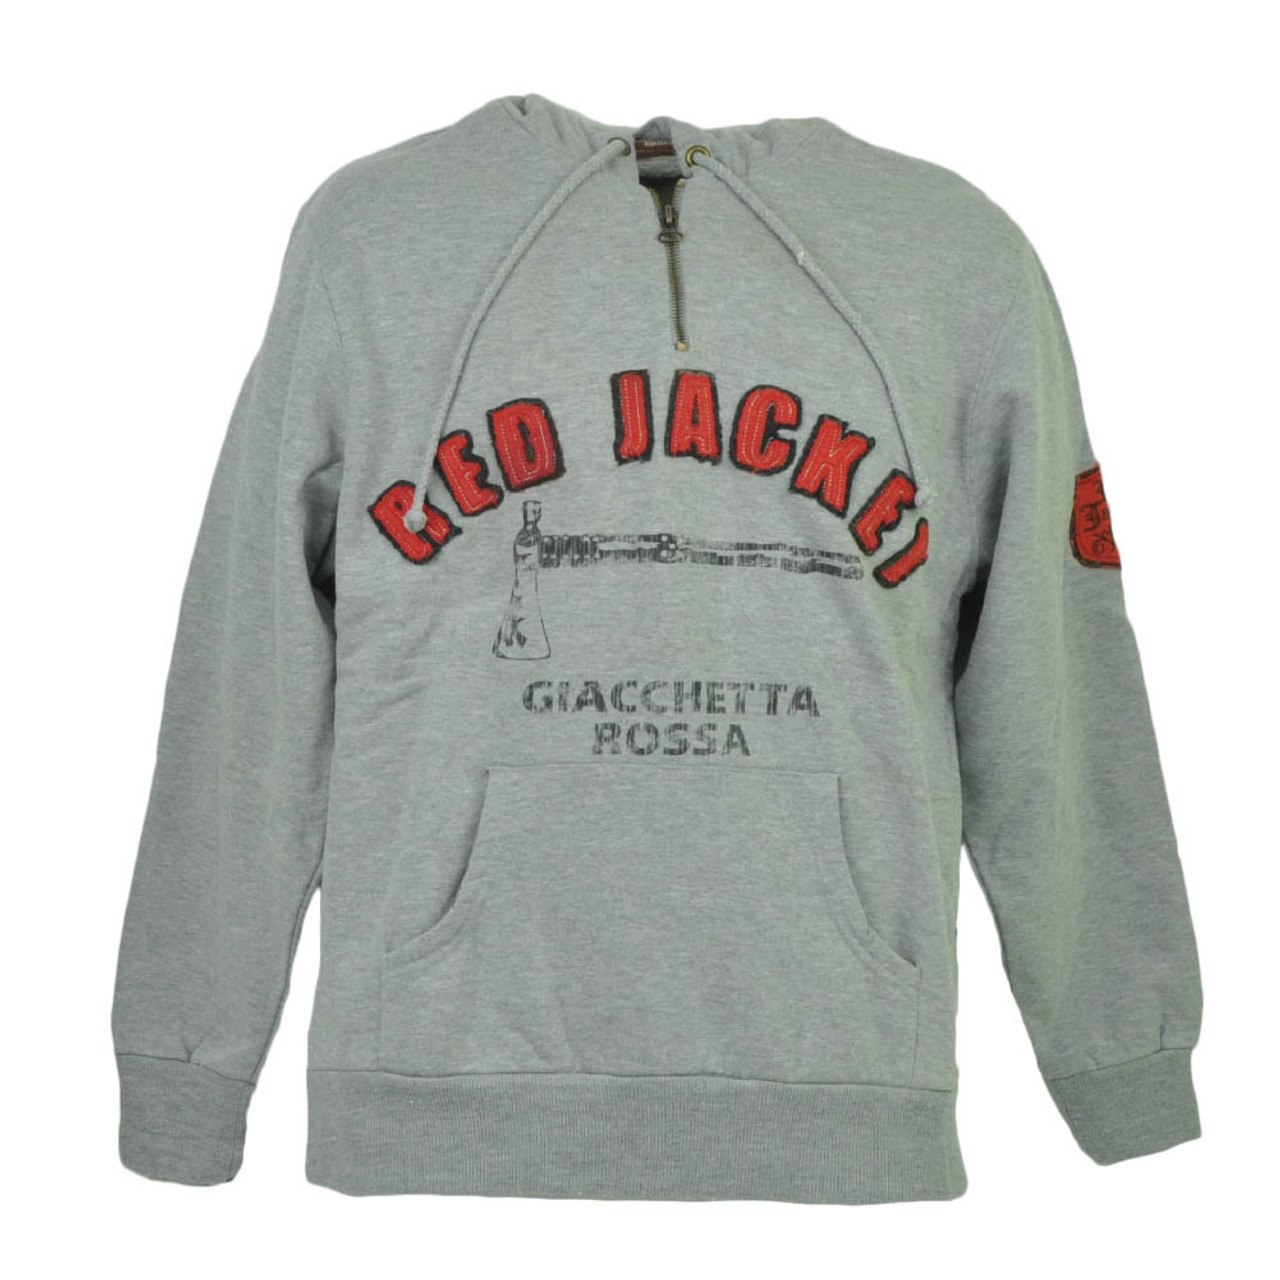 newest 5e23f c9ae9 Red Jacket Giacchetta Rossa Hoodie Hooded Gray Sweater Mens Adult Distressed